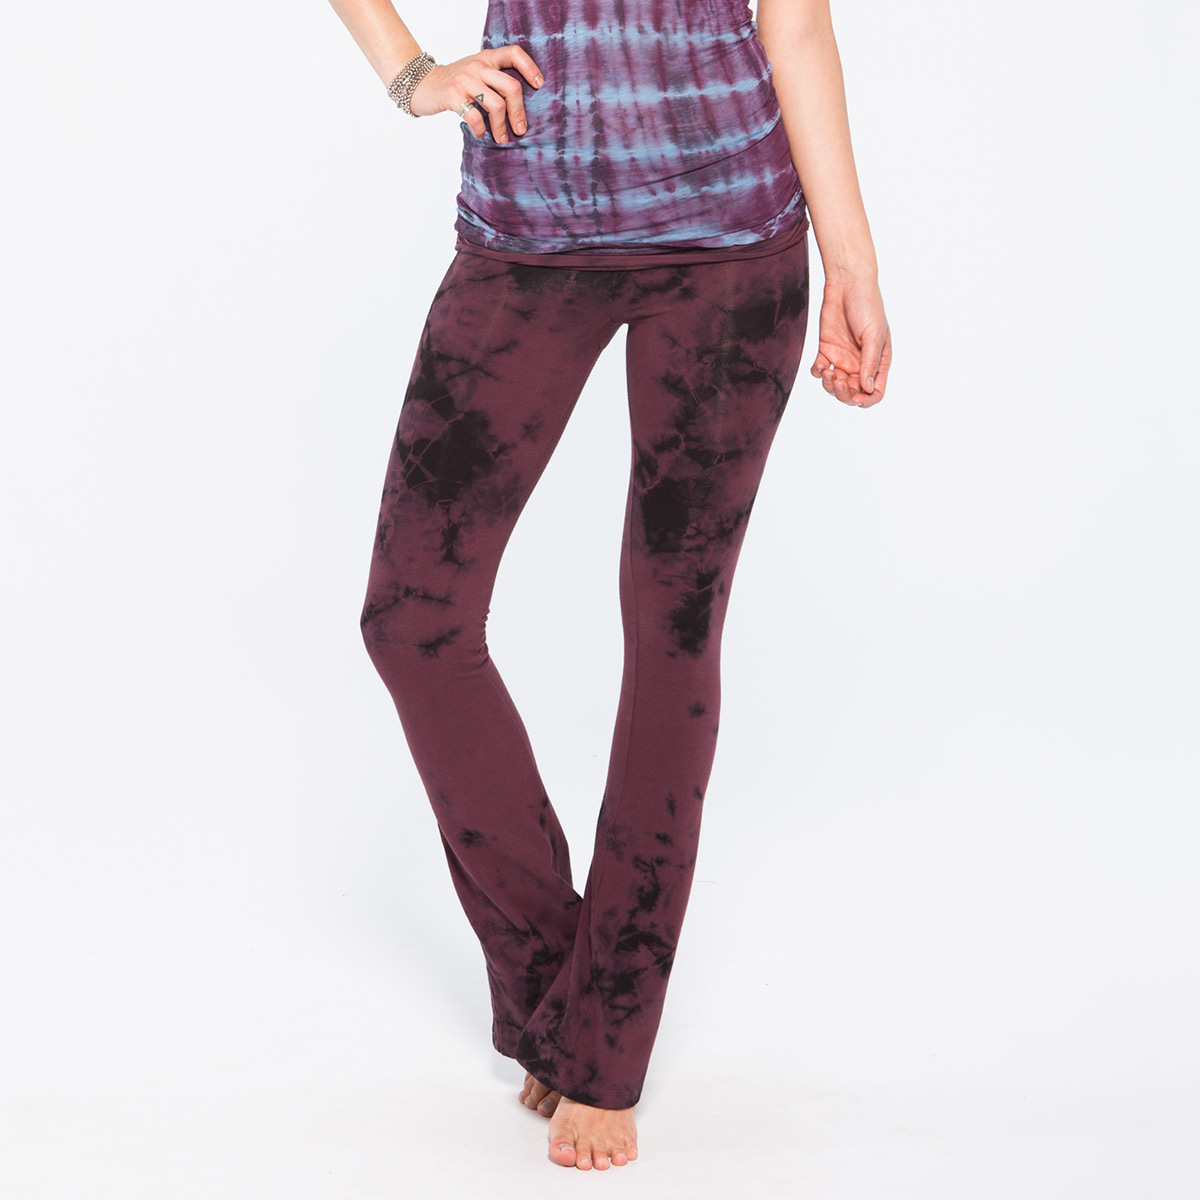 Om Girl Aura Wash Practice Pant in Womens Apparel at Vickerey